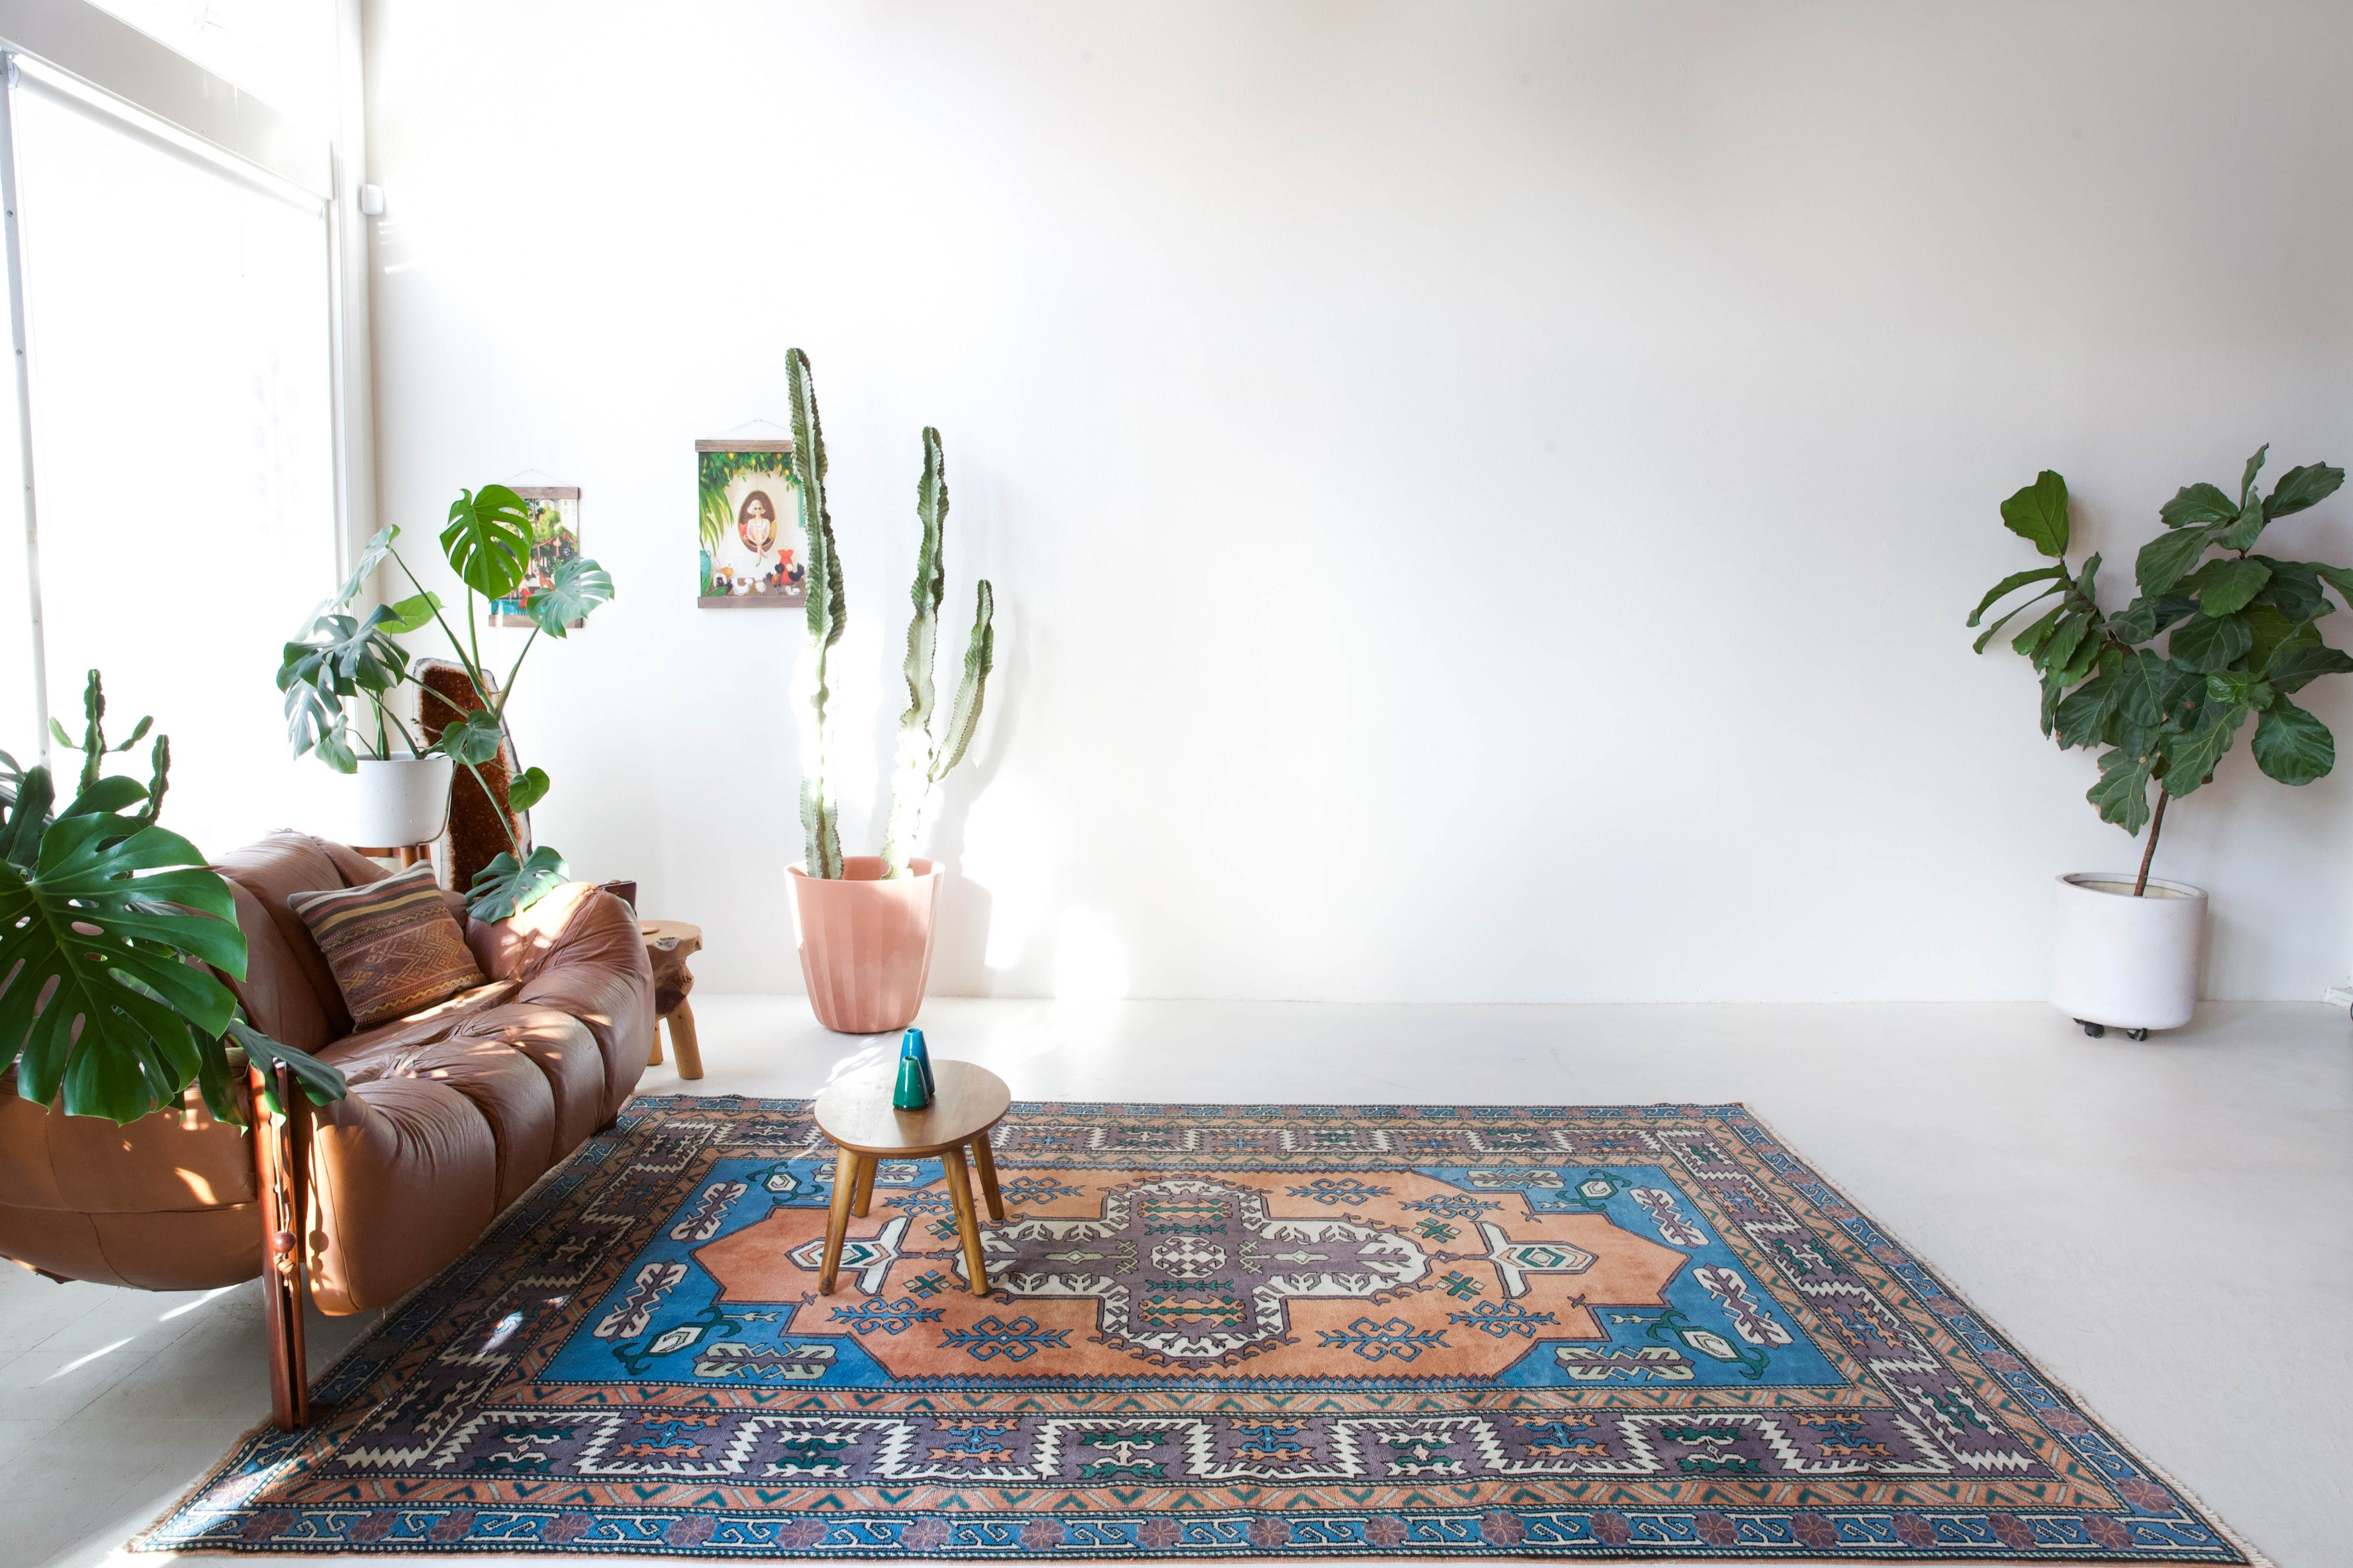 Vintage Turkish rug in living room setting, old rug, antique rug, pastel colors, faded colors, Turkish rug, vintage rug, soft rug, Portland, Oregon, rug store, rug shop, local shop, pastel colors